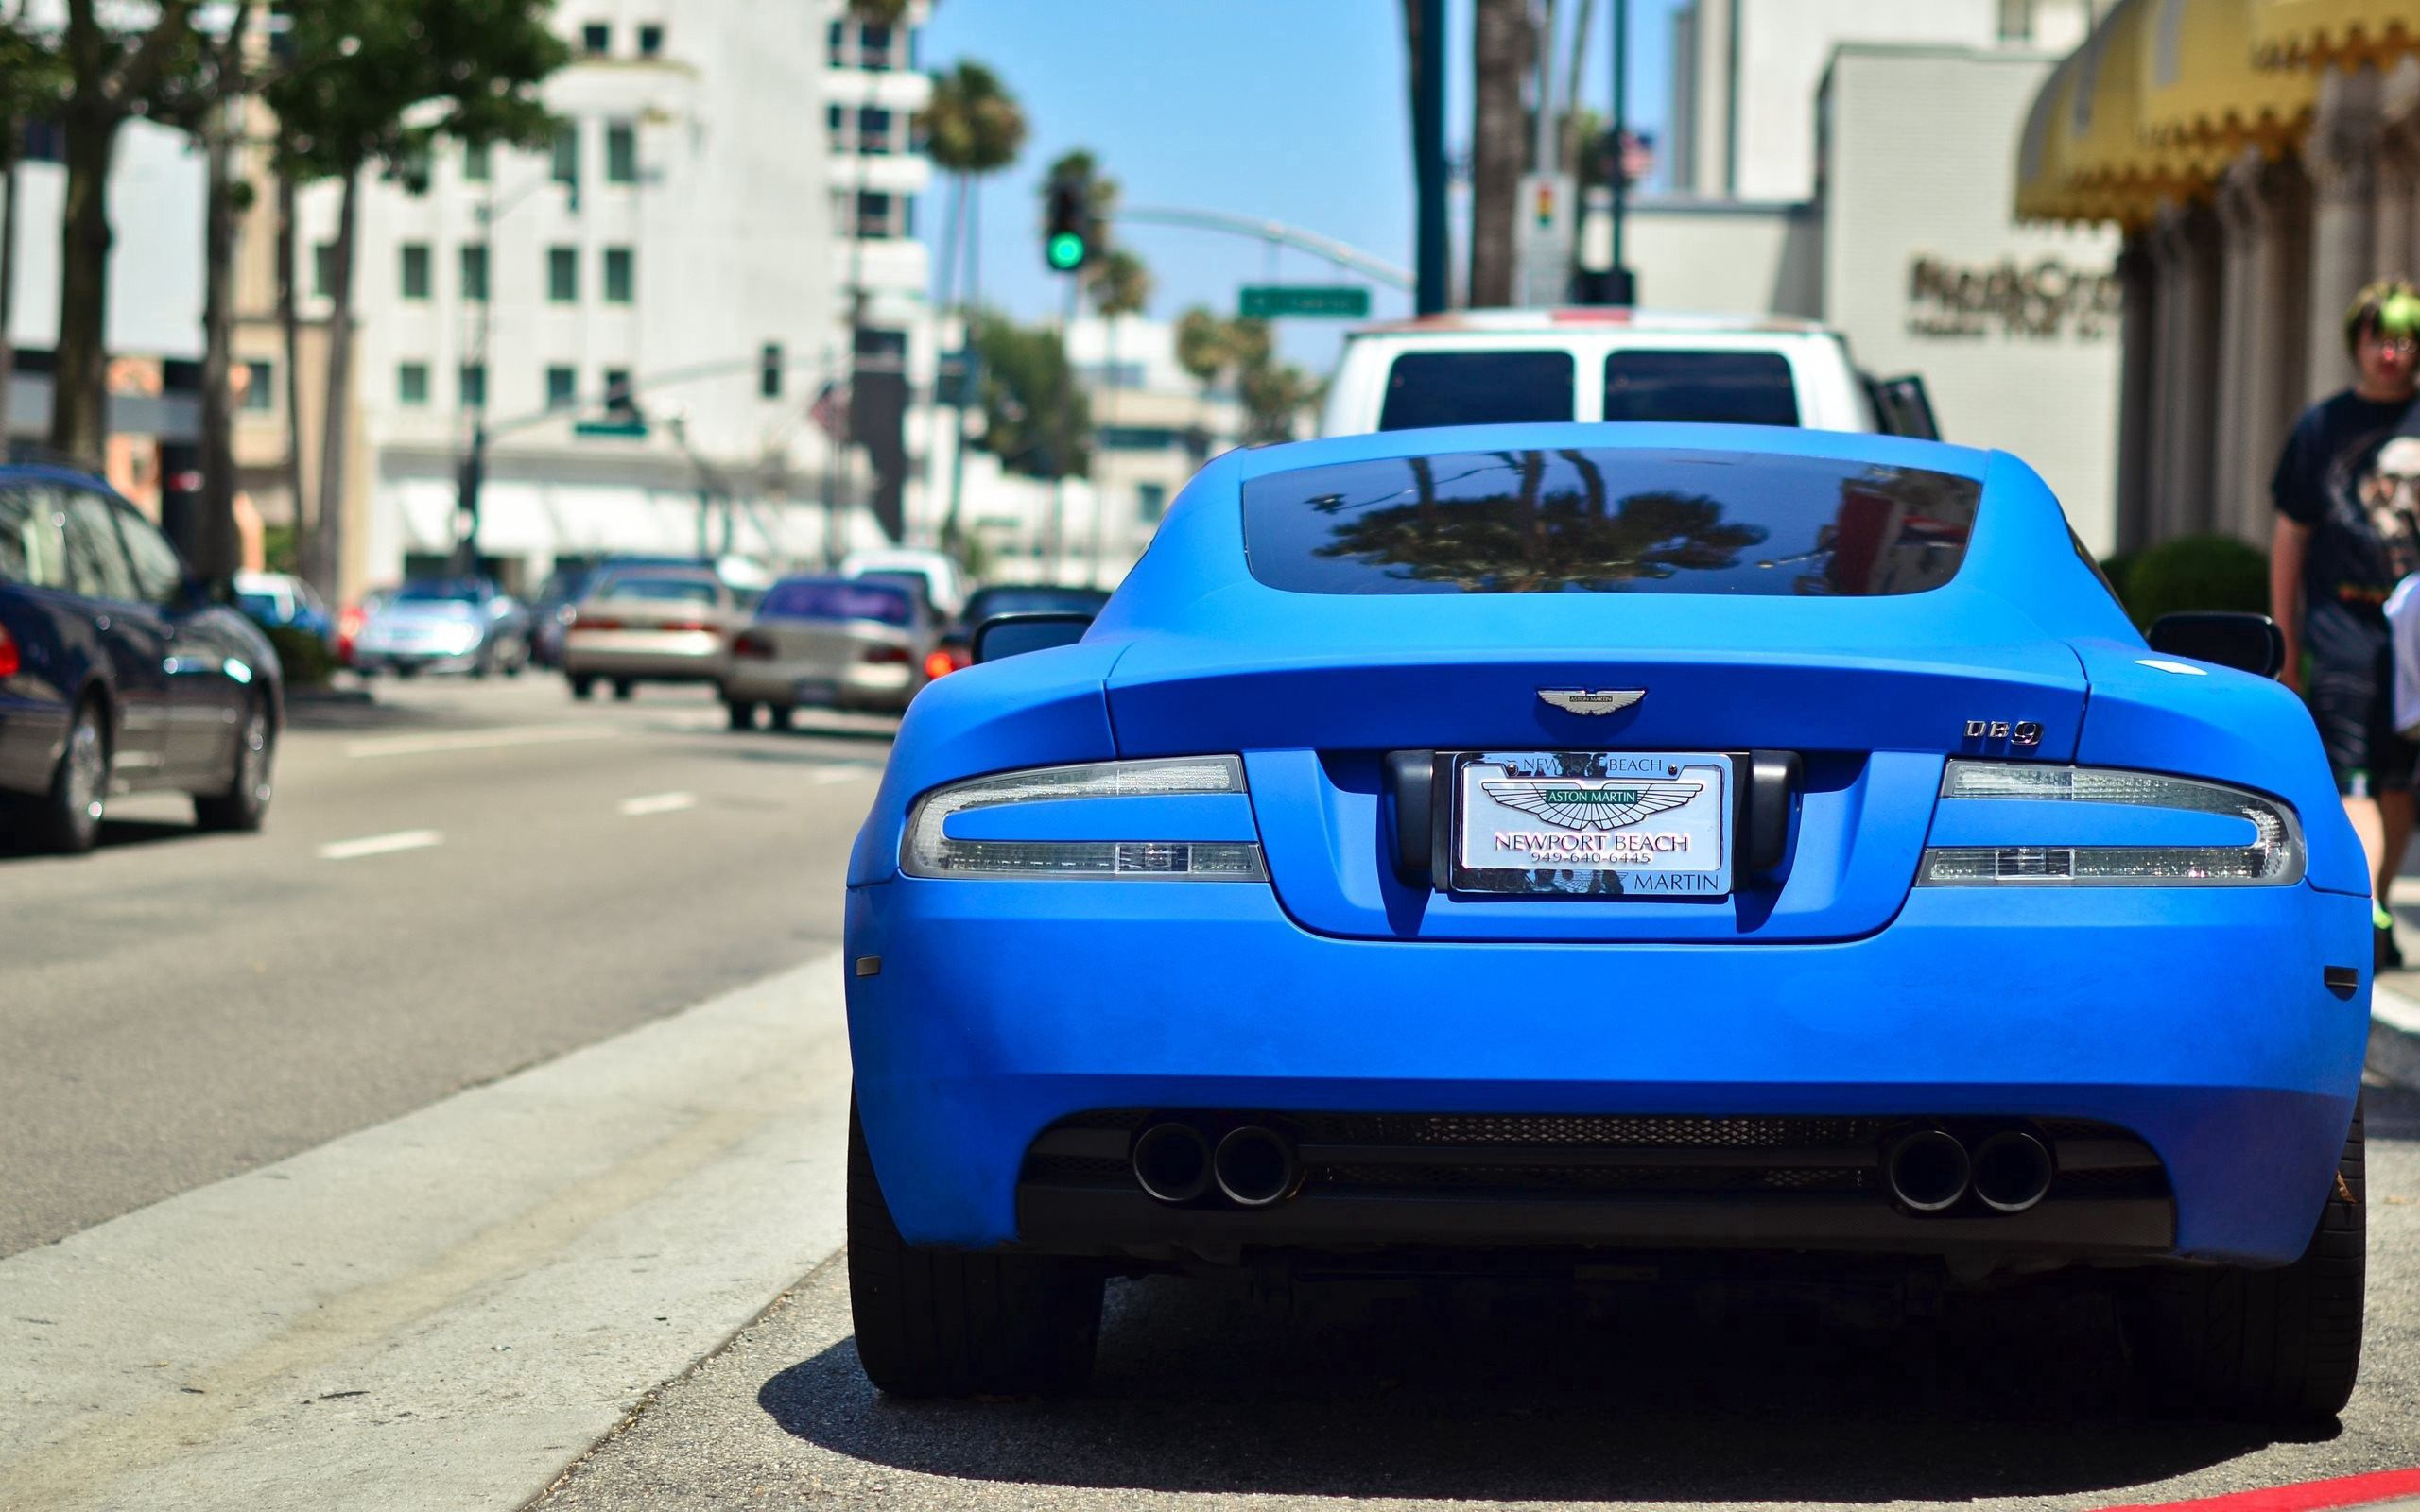 138368 download wallpaper Cars, Aston Martin, Auto, Back View, Rear View screensavers and pictures for free